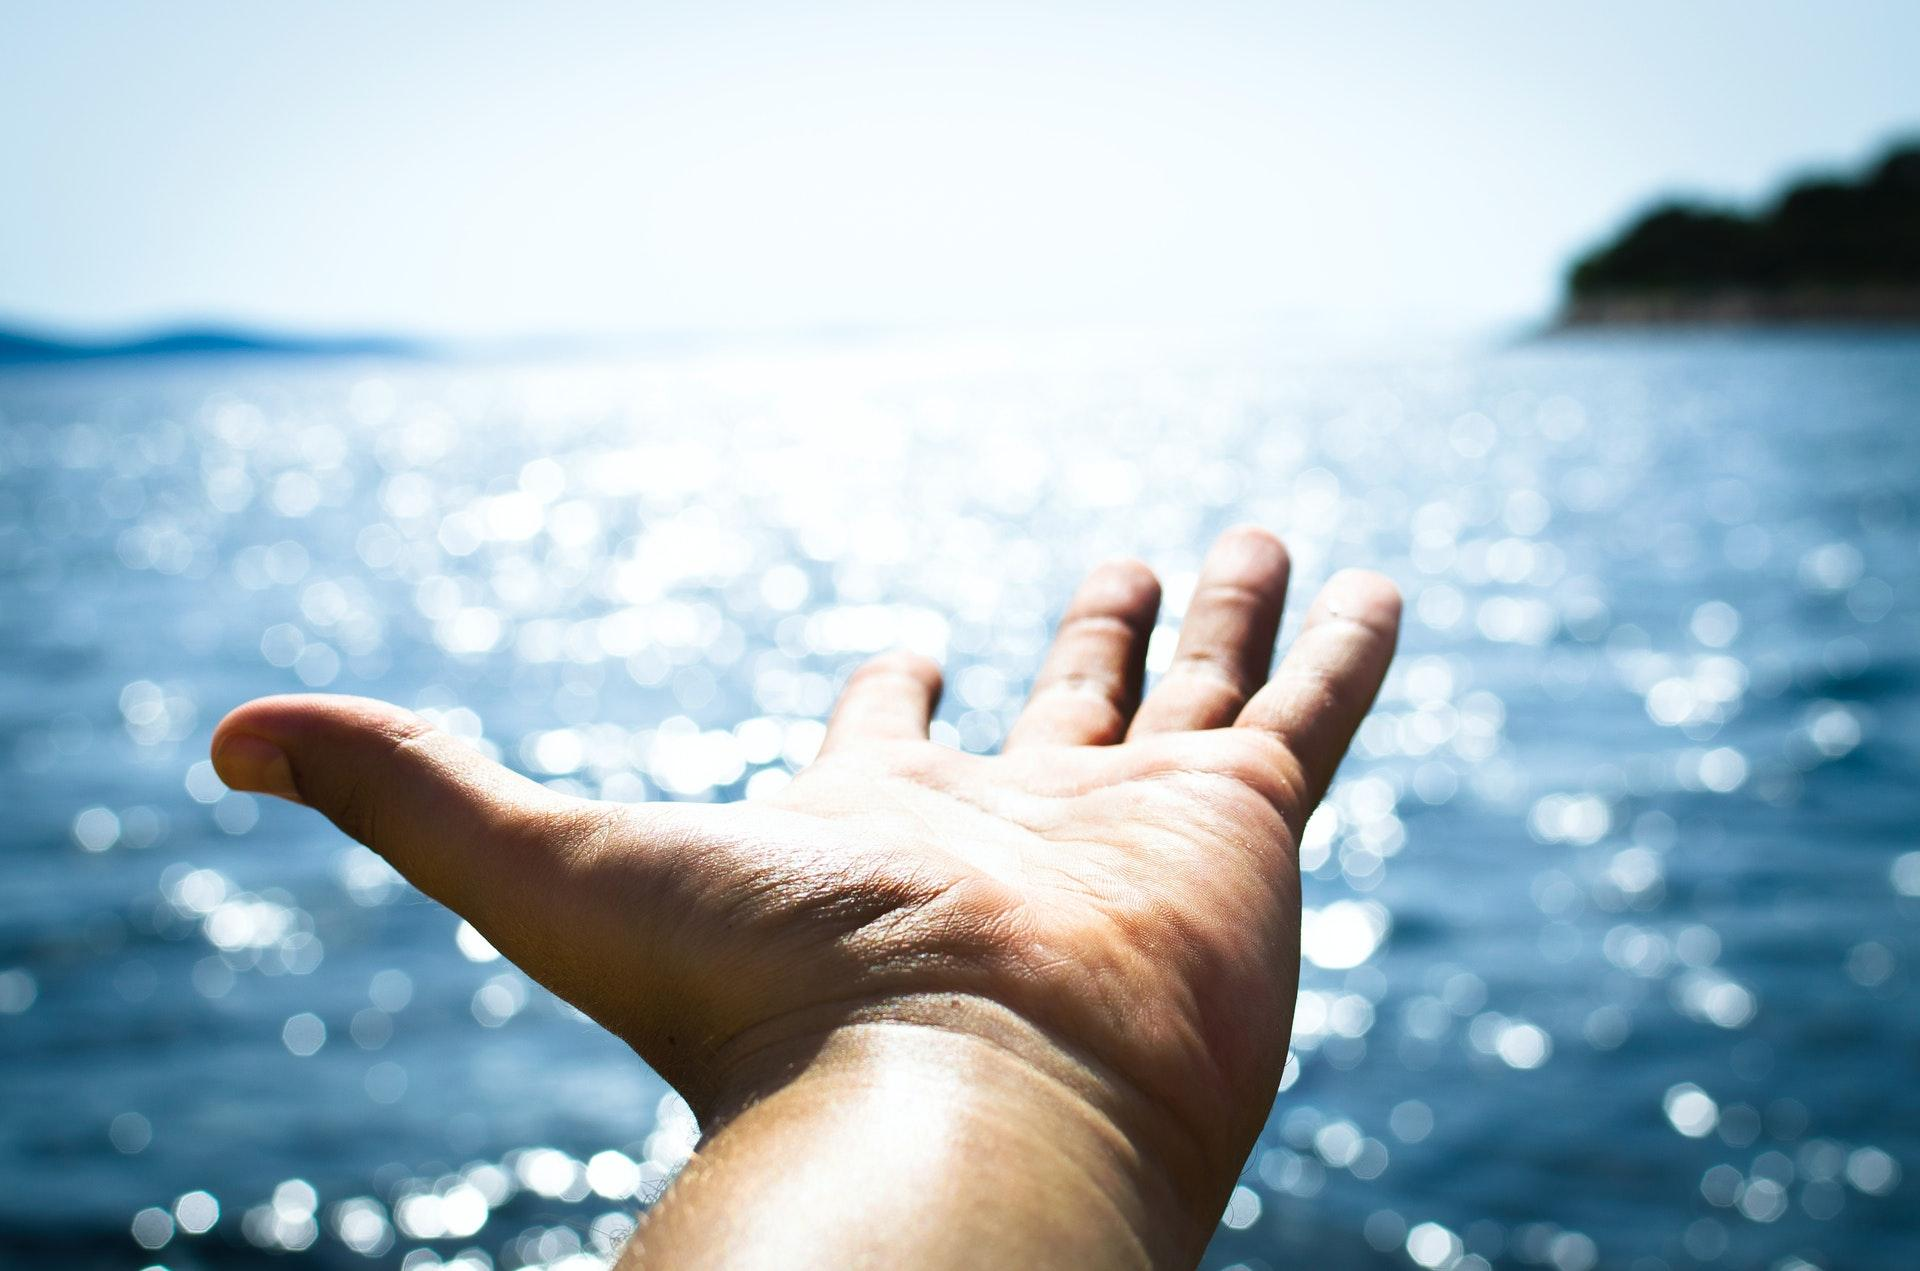 adult hand in front of ocean background